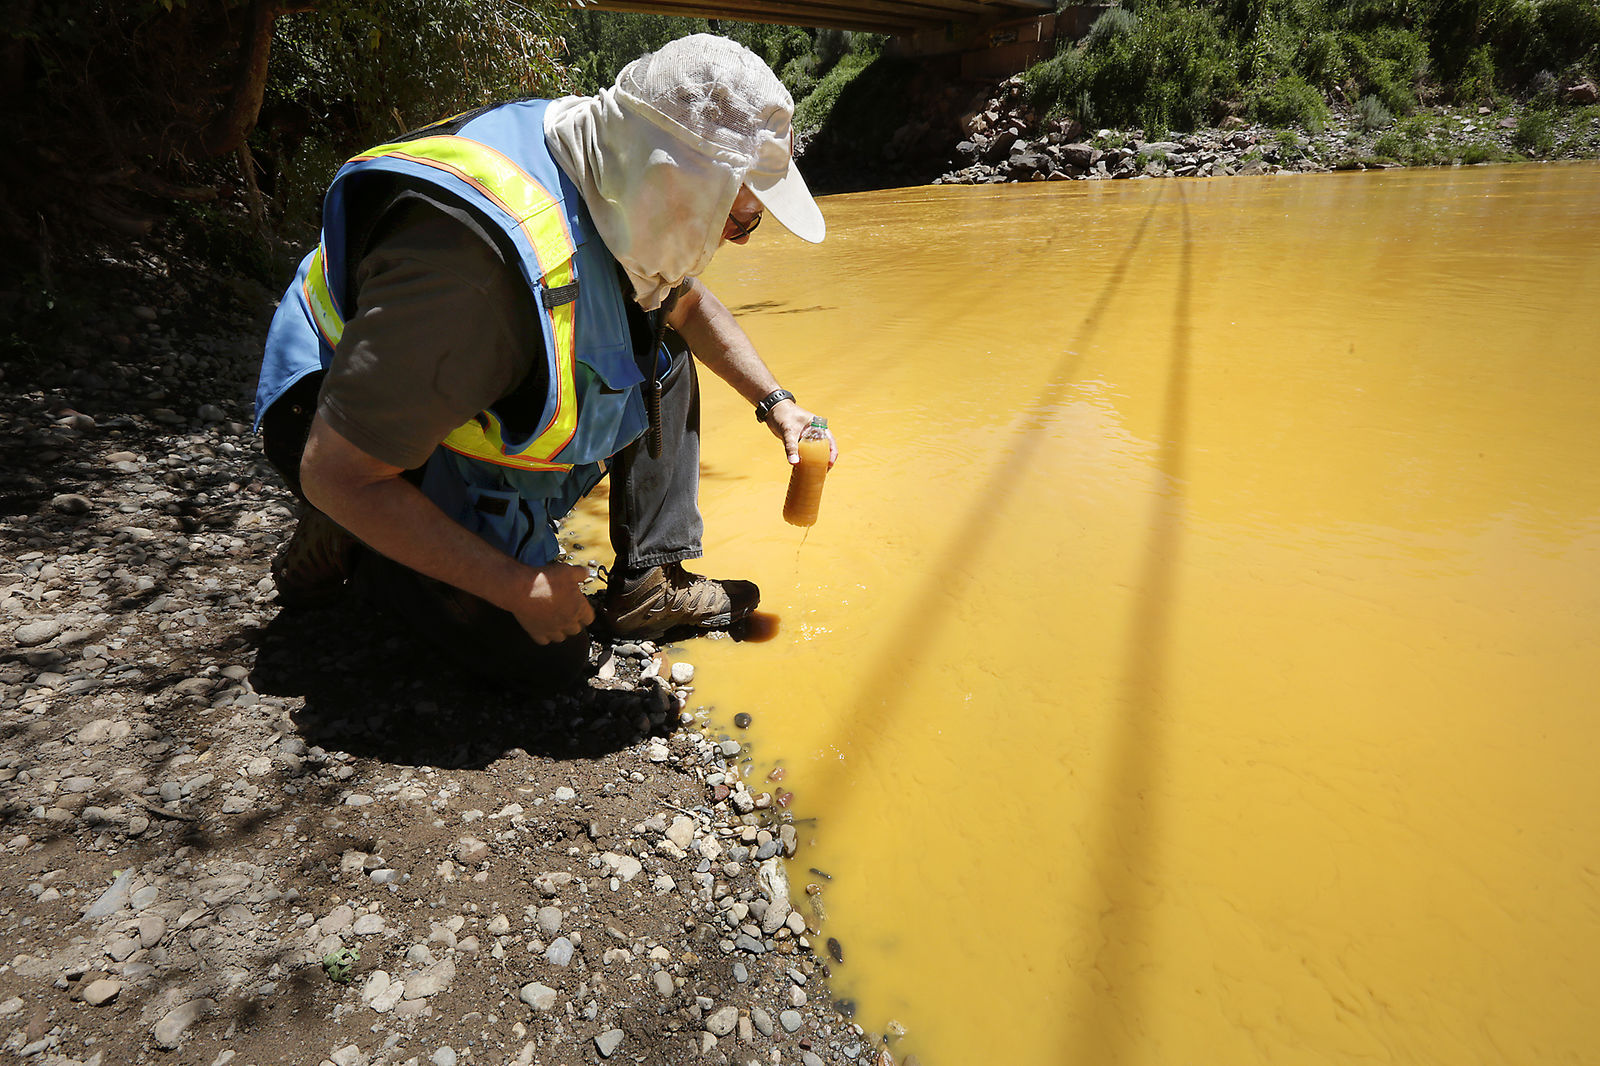 FILE - In this Aug. 6, 2015 file photo, Dan Bender, with the La Plata County Sheriff's Office, takes a water sample from the Animas River near Durango, Colo. after the accidental released of an estimated 3 million gallons of waste from the Gold King Mine by a crew led by the Environmental Protection Agency. The EPA says it has almost finished reviewing hundreds of damage claims from the spill, but the agency has still not released a clear accounting of the claims made for economic losses and personal injuries. (Jerry McBride /The Durango Herald via AP, File)